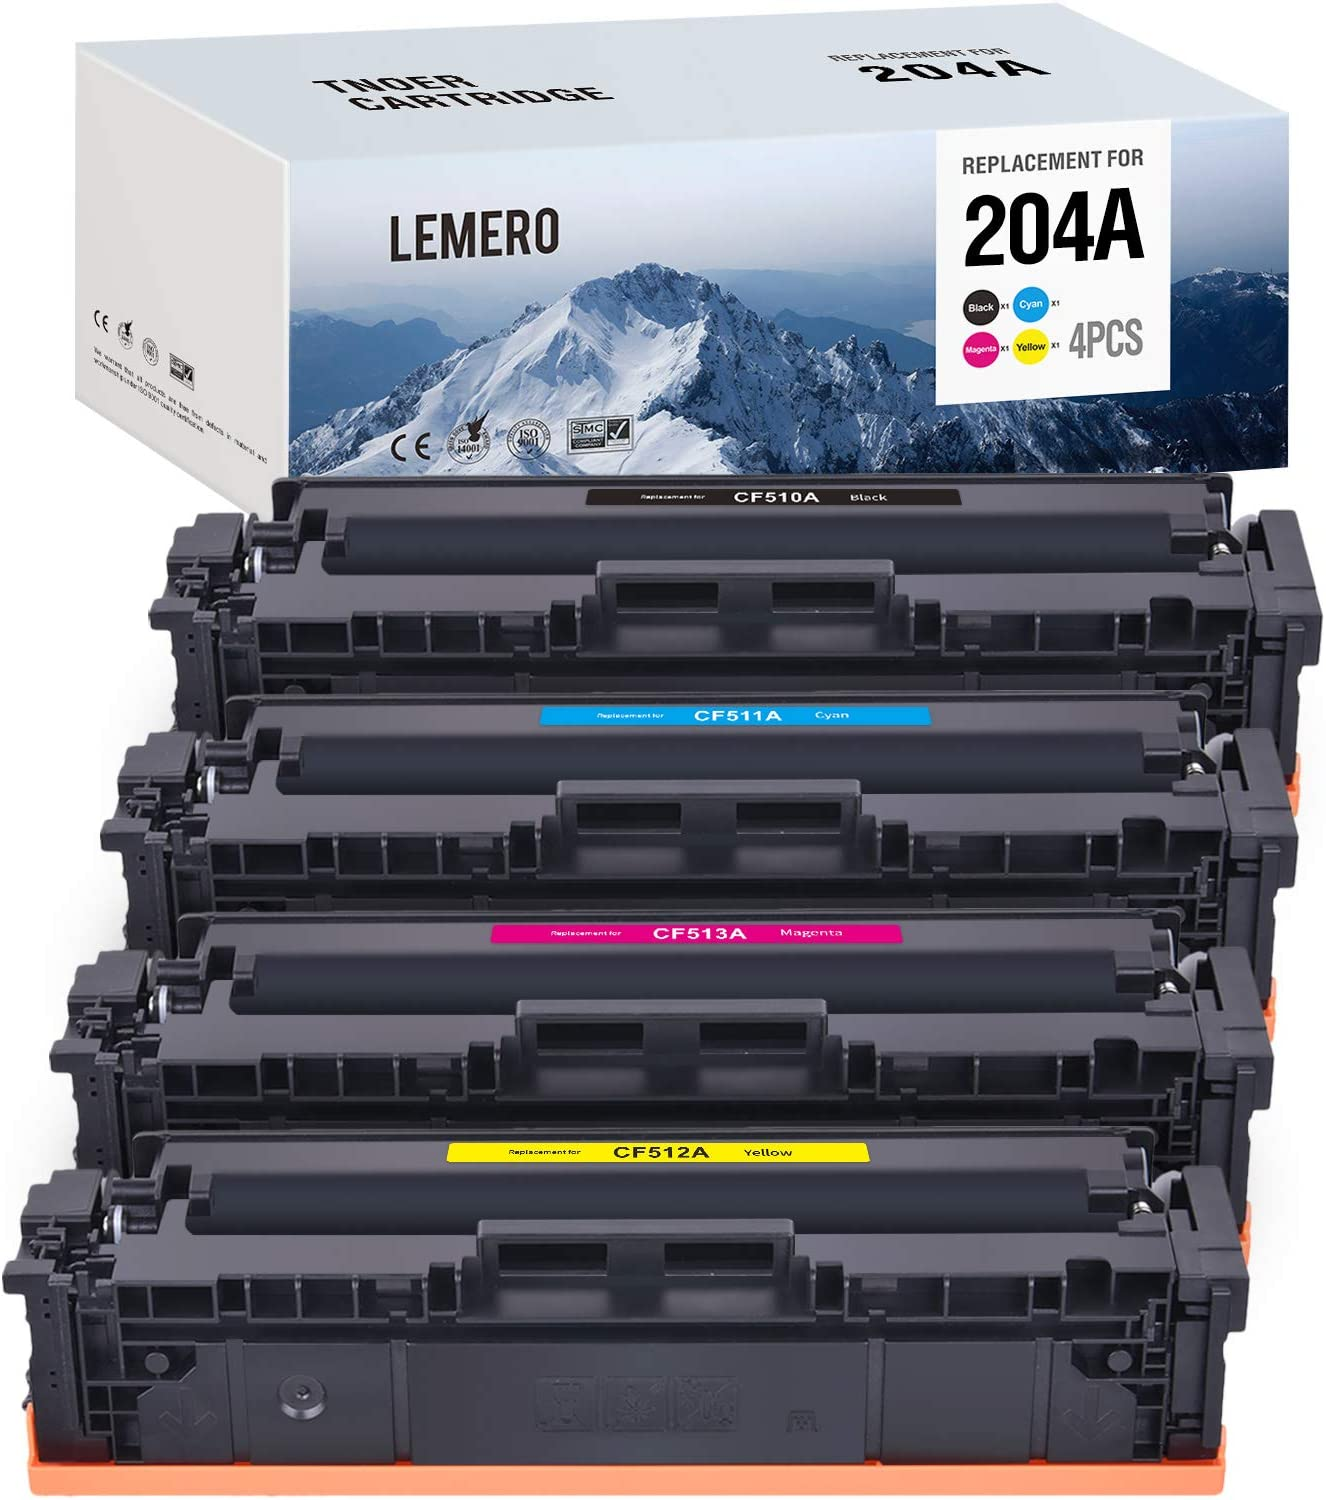 LEMERO Compatible Toner Cartridges Replacement for HP 204A CF510A CF511A CF512A CF513A to use with Color Laserjet Pro MFP M180nw M180n M181fw M154nw M154a (Black Cyan Magenta Yellow, 4-Pack)